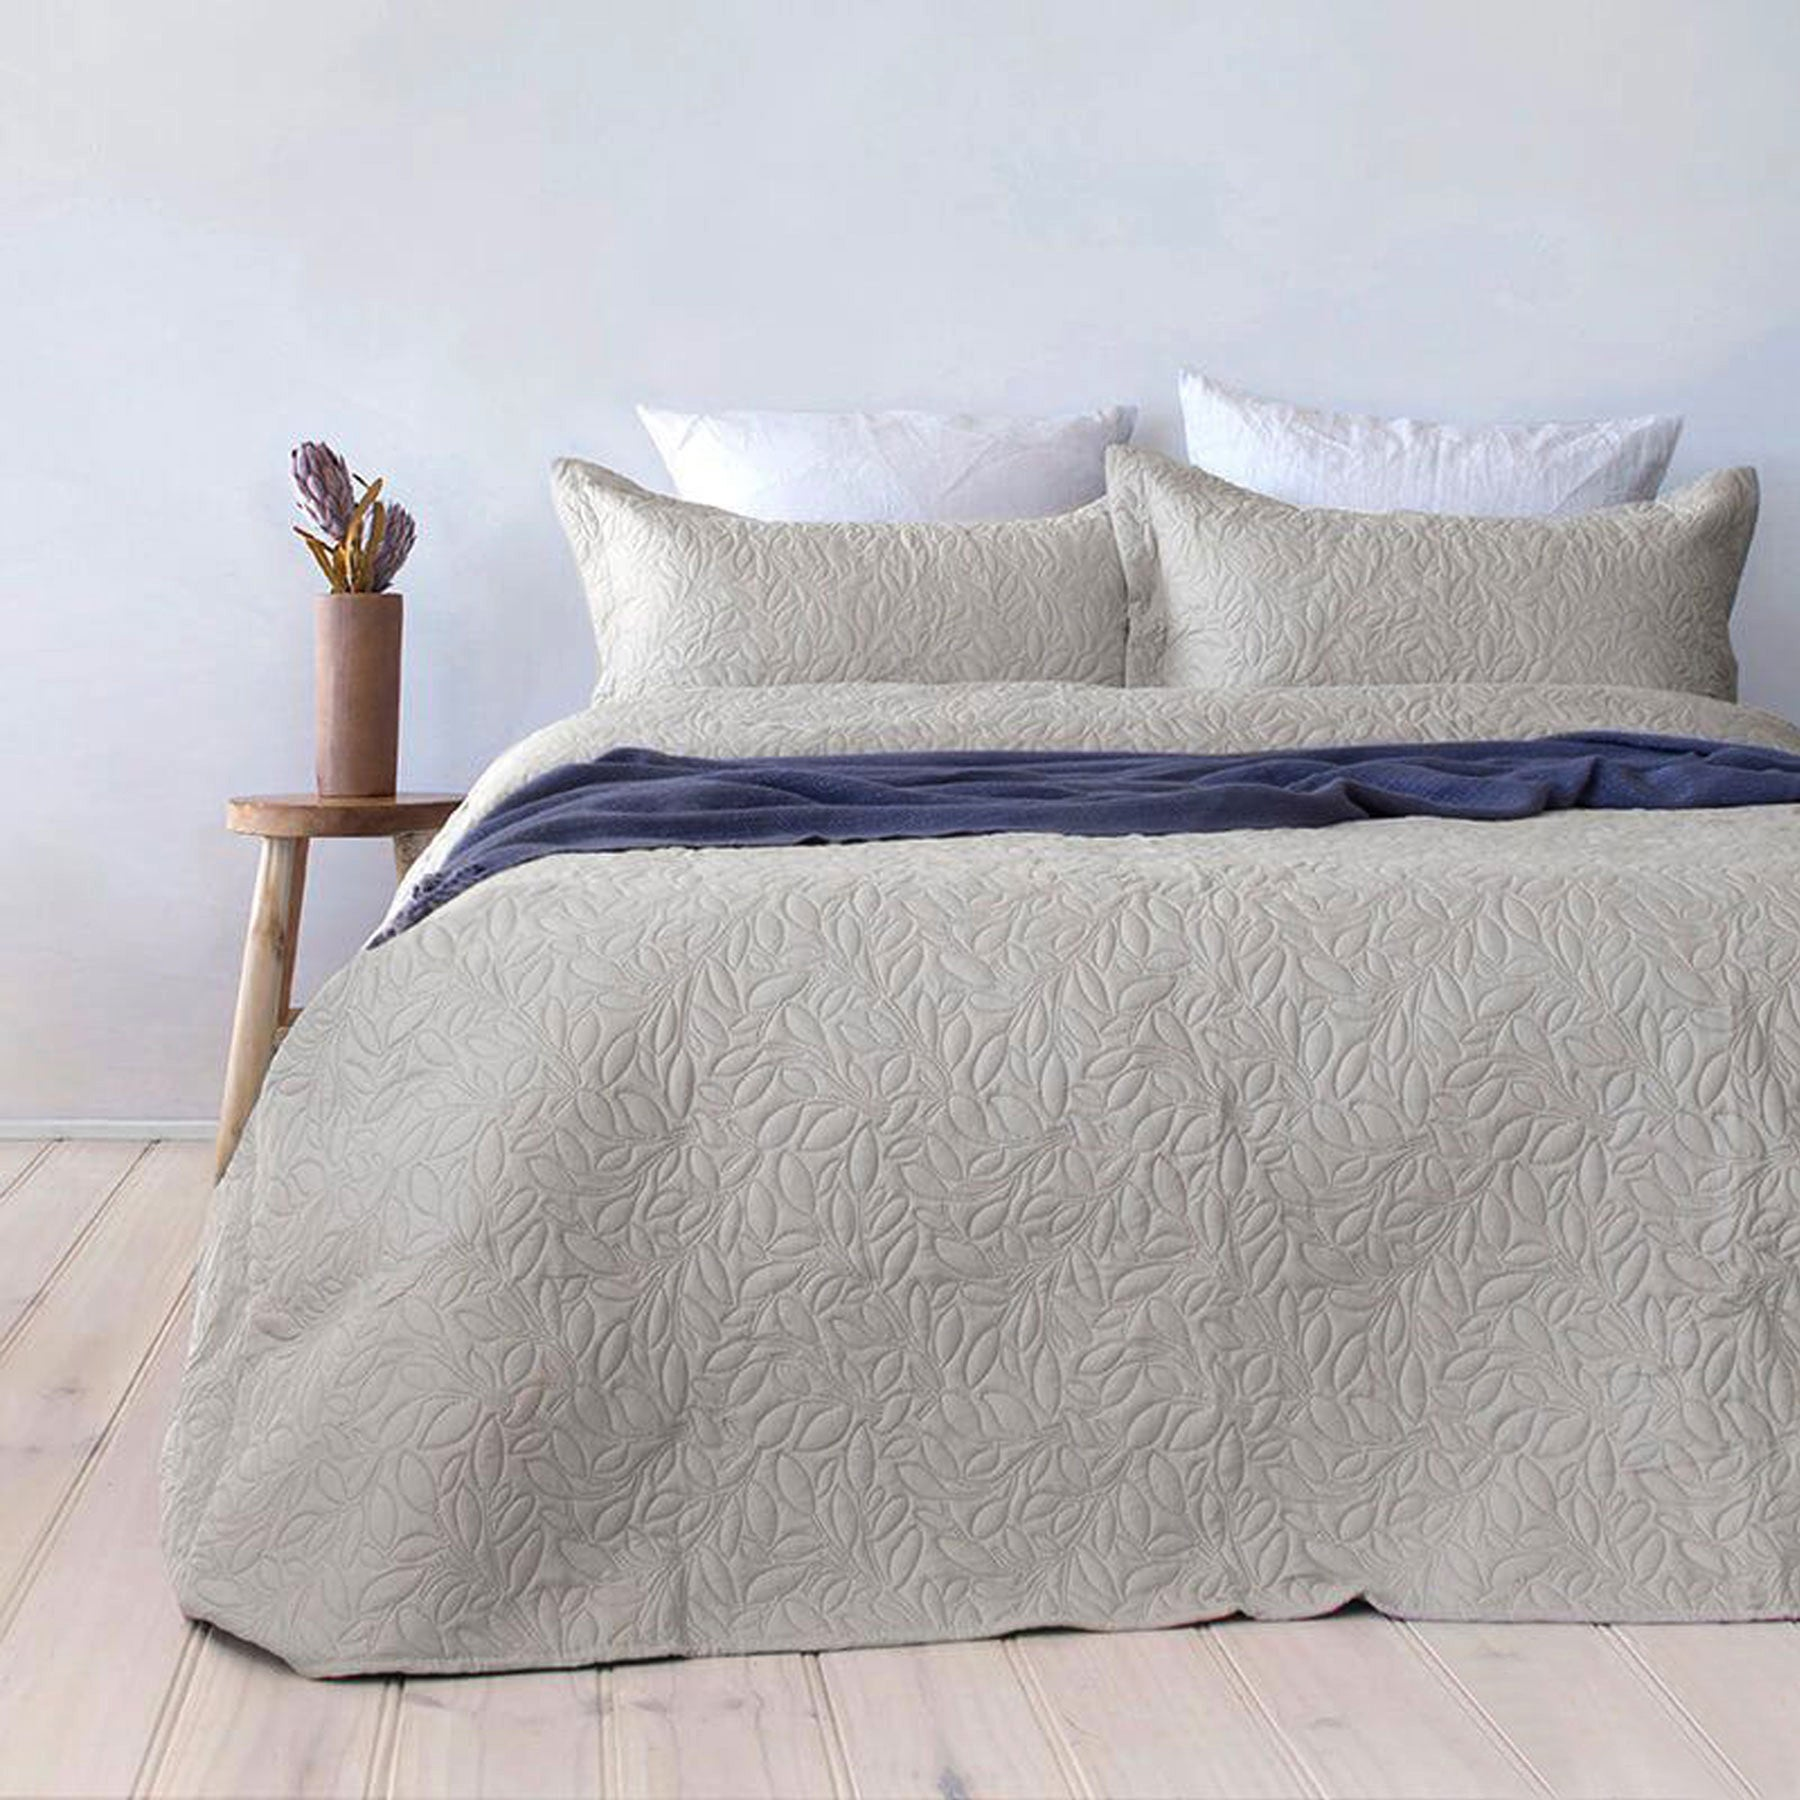 Botanica Embossed Coverlet Set Queen/King by Bambury